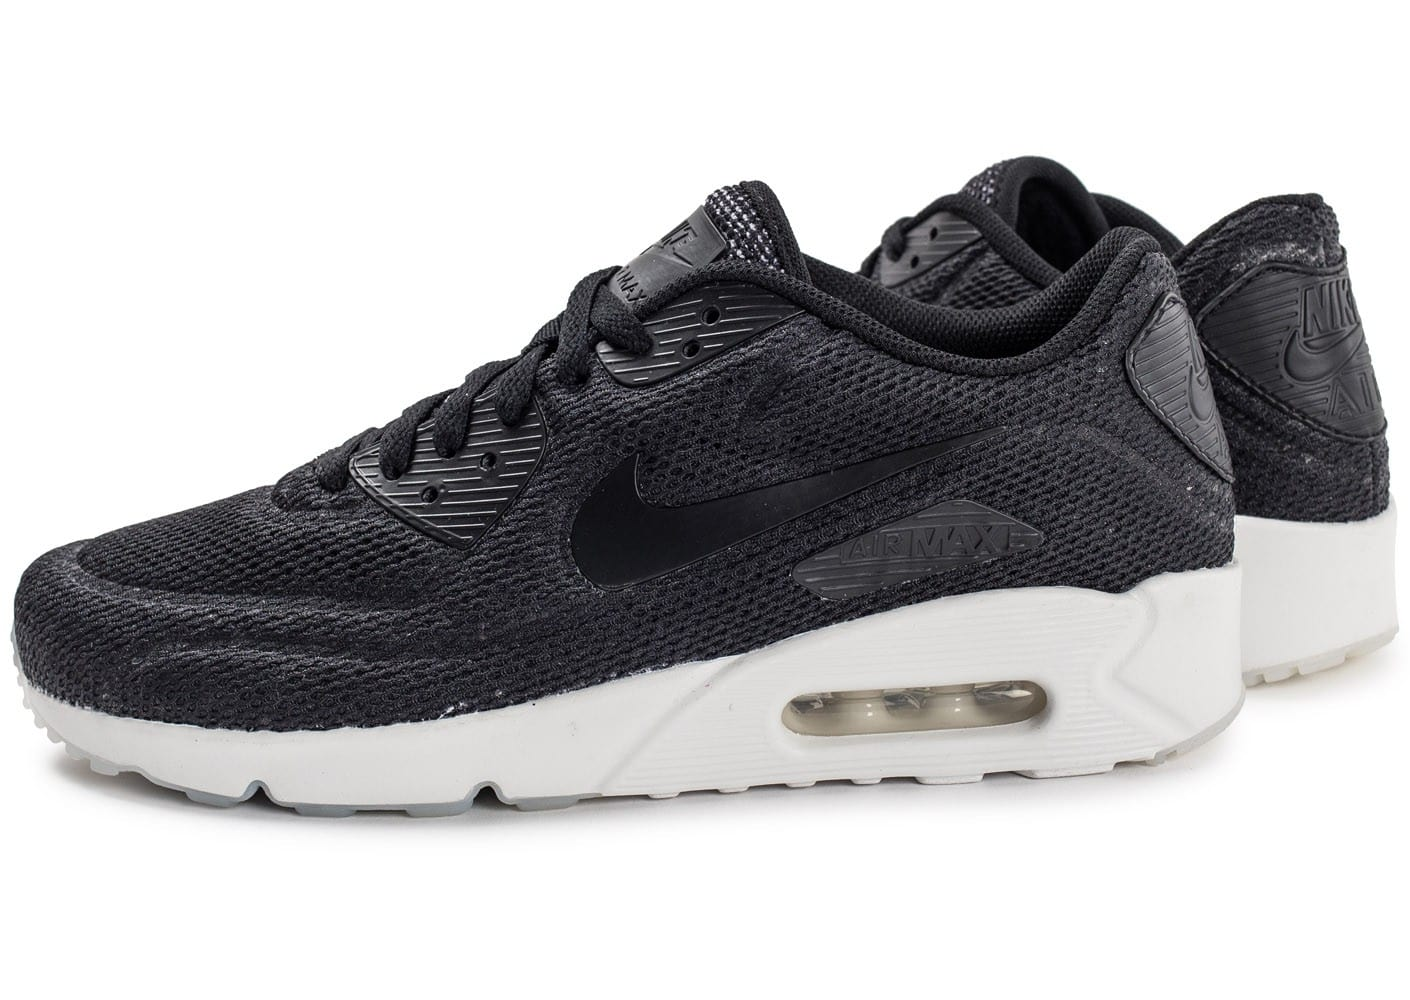 Nike Air Max 90 Ultra Breeze noire Chaussures Baskets homme